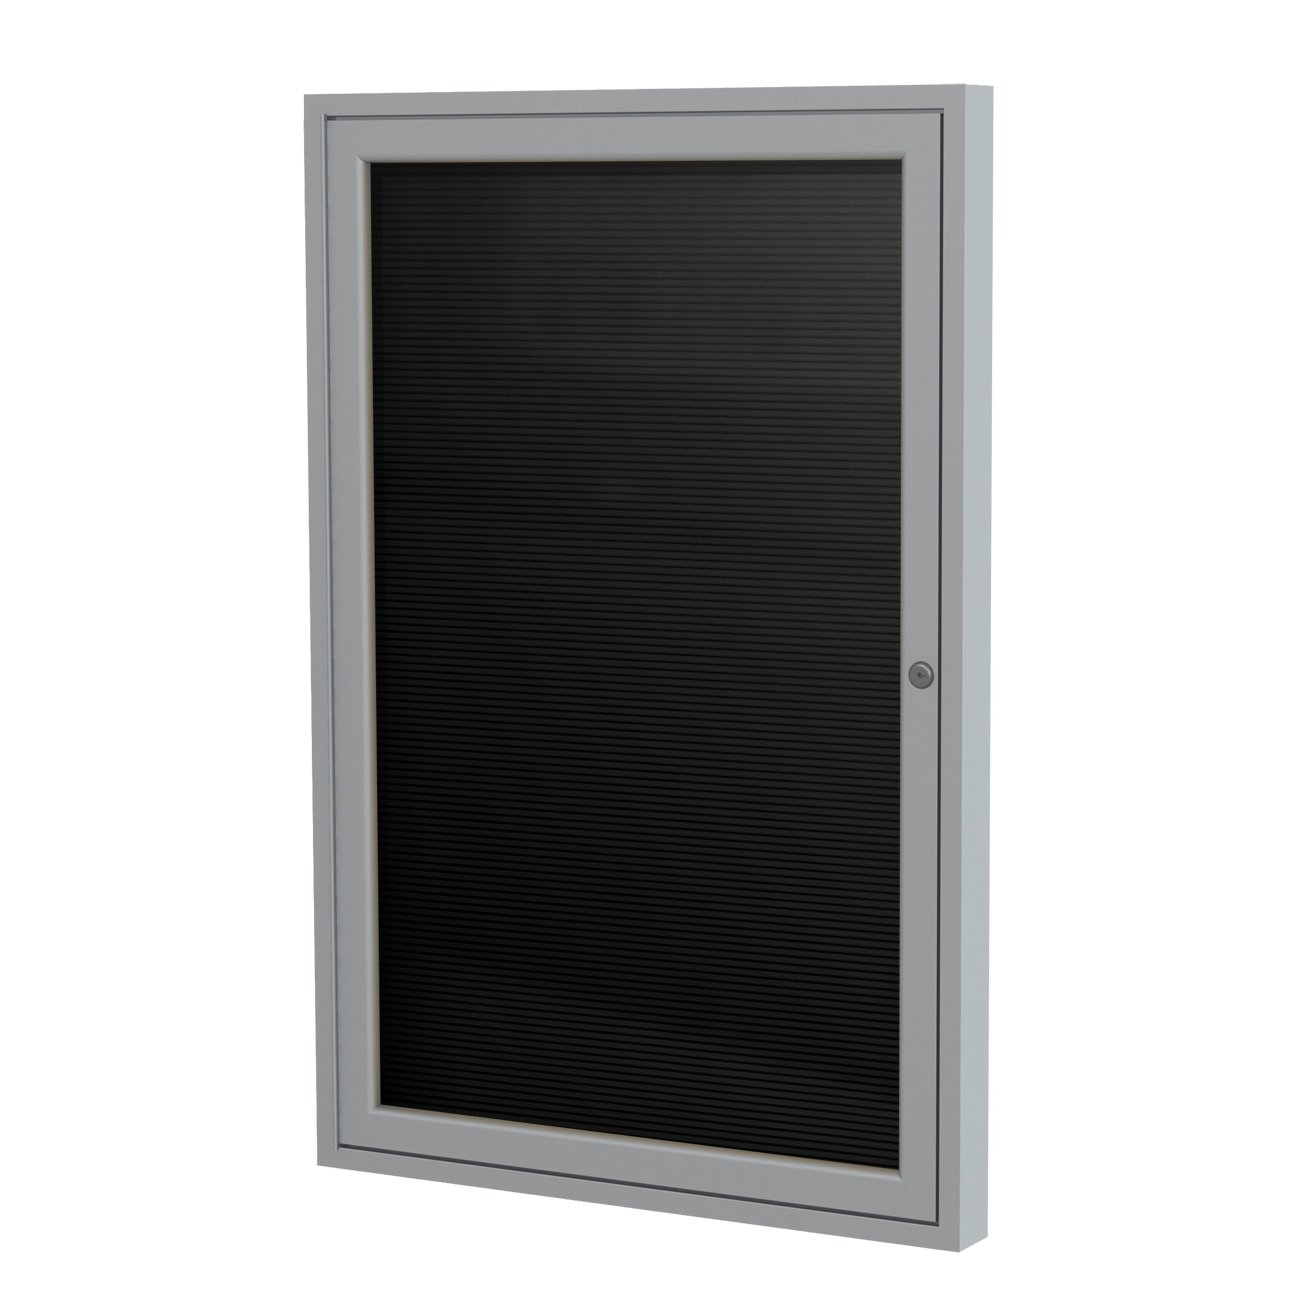 Ghent 36''x30'' 1-Door Satin Aluminum Frame Enclosed Flannel Letterboard - Black - Made in the USA